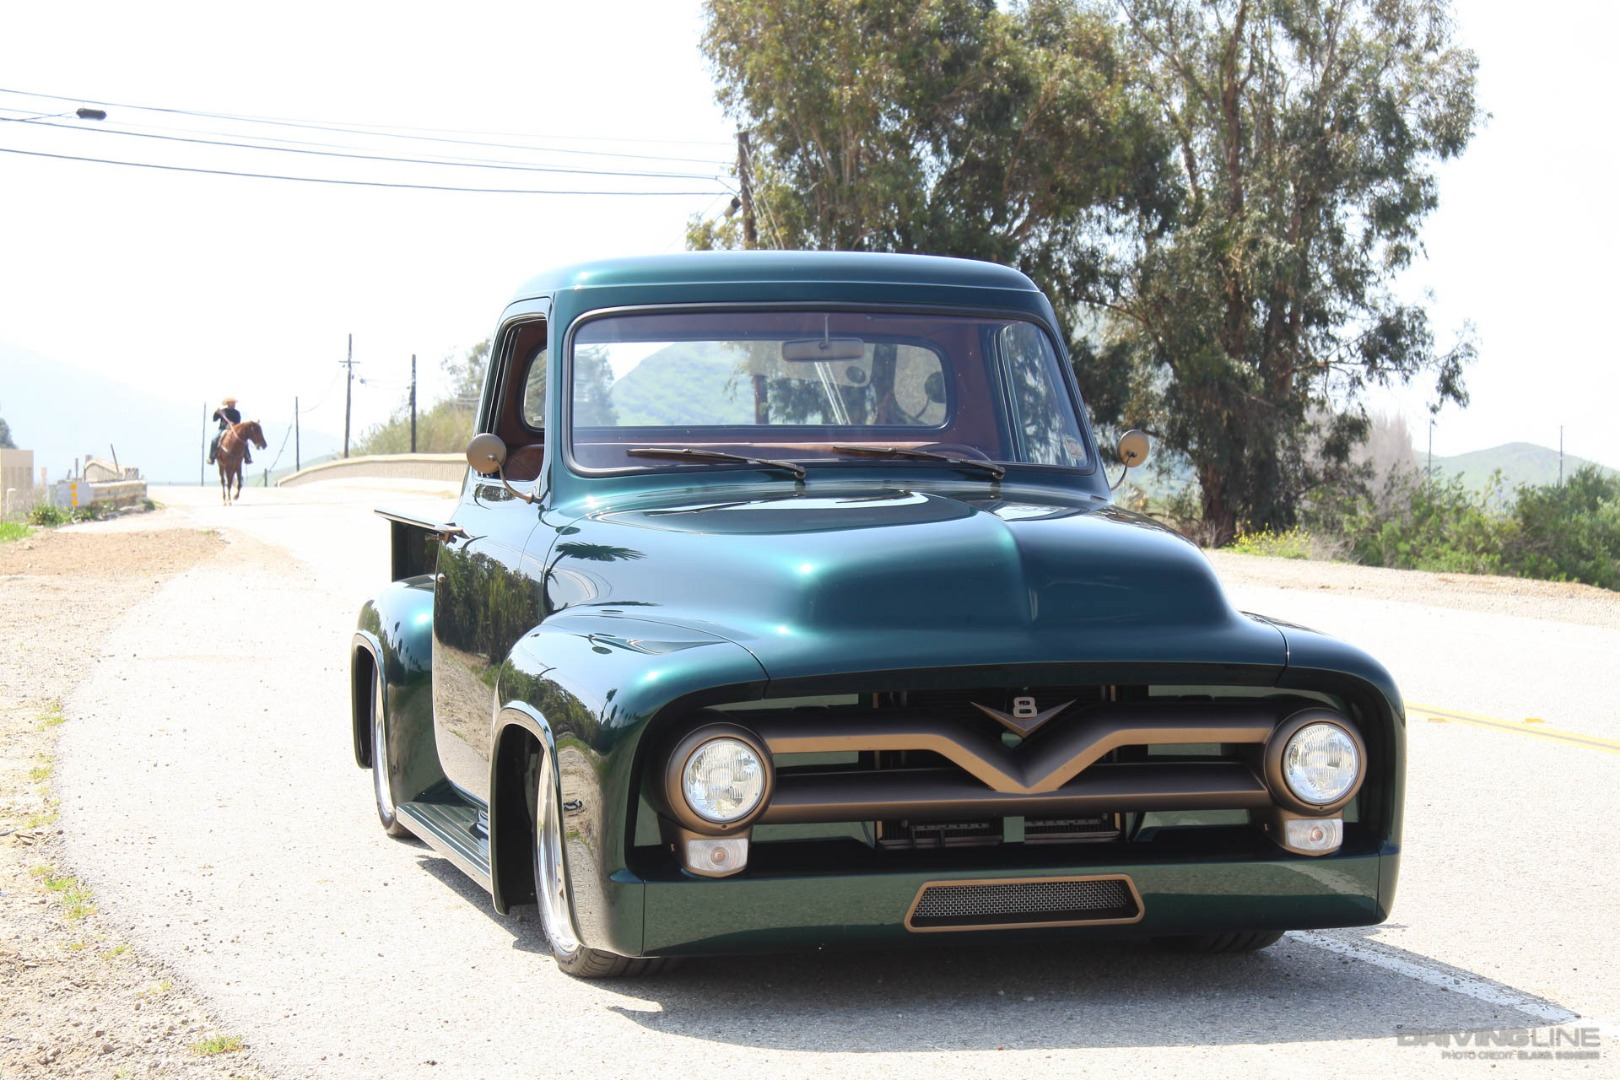 Chasing The Blues Away With A Green Machine Drivingline 1955 Ford F100 Pick Up St Louis 1953 0032 Preview Image